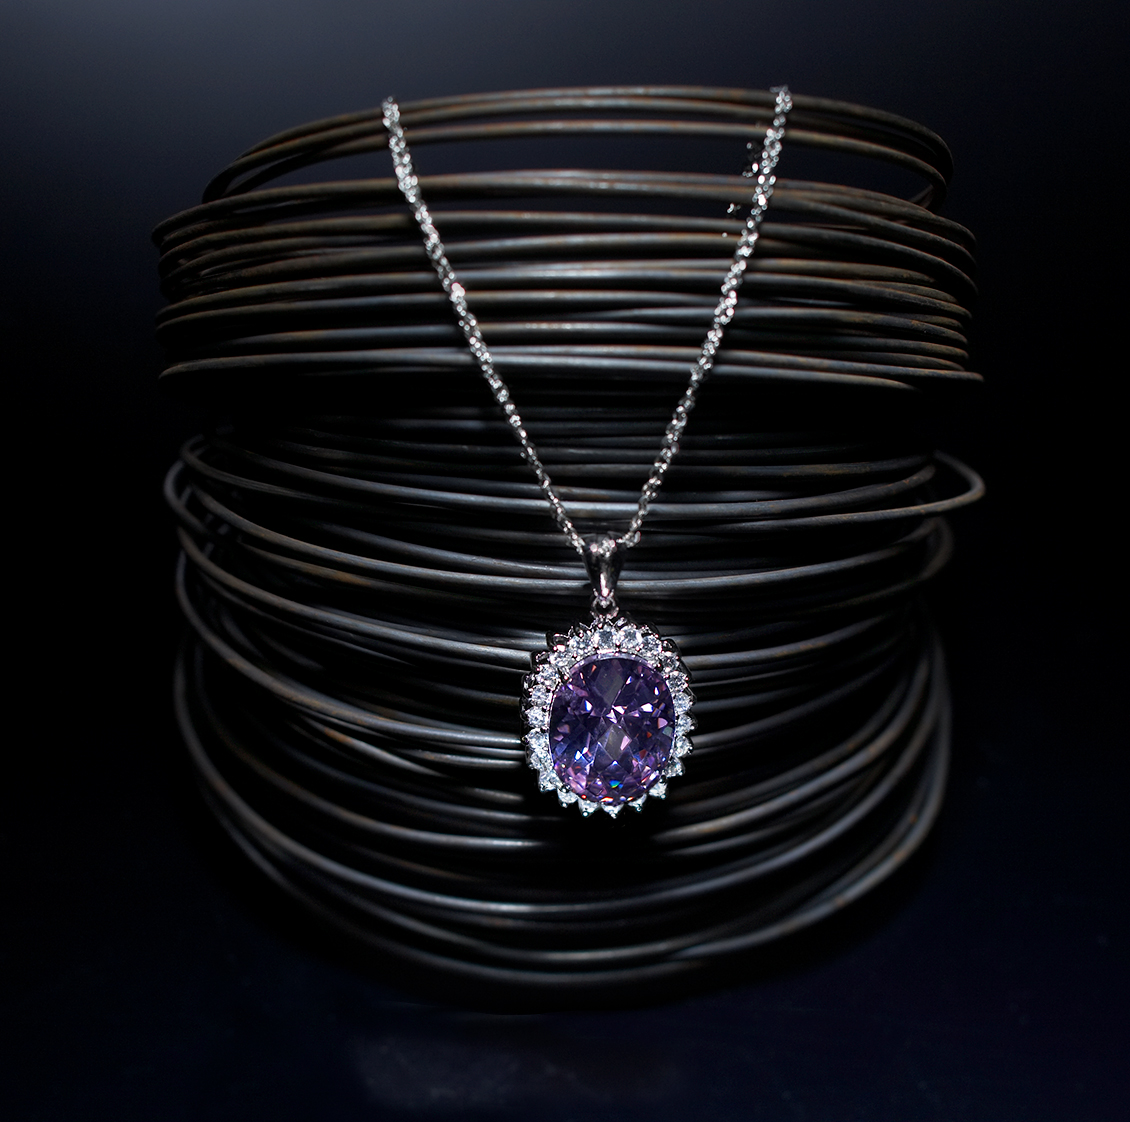 gemstone necklace product art director